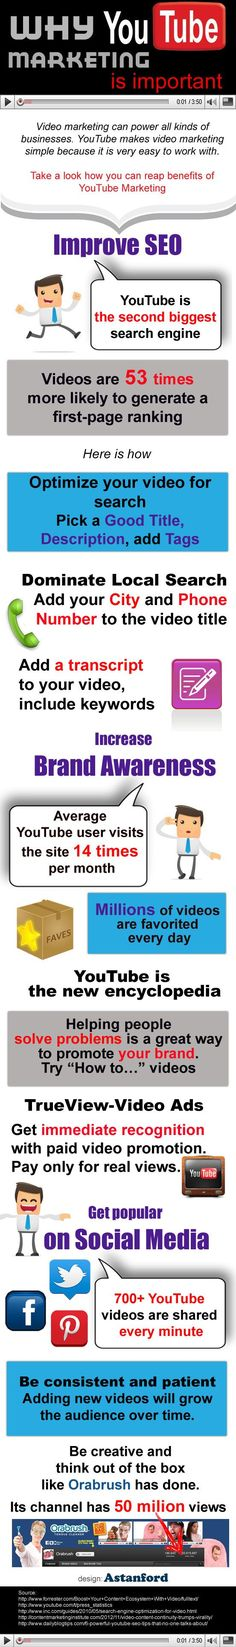 Videos can be used for SEO, brand awareness or lead generation to name just a few reasons why YouTube Marketing is important. In this infographic we share tips how to reap benefits of YouTube. The future is in video.